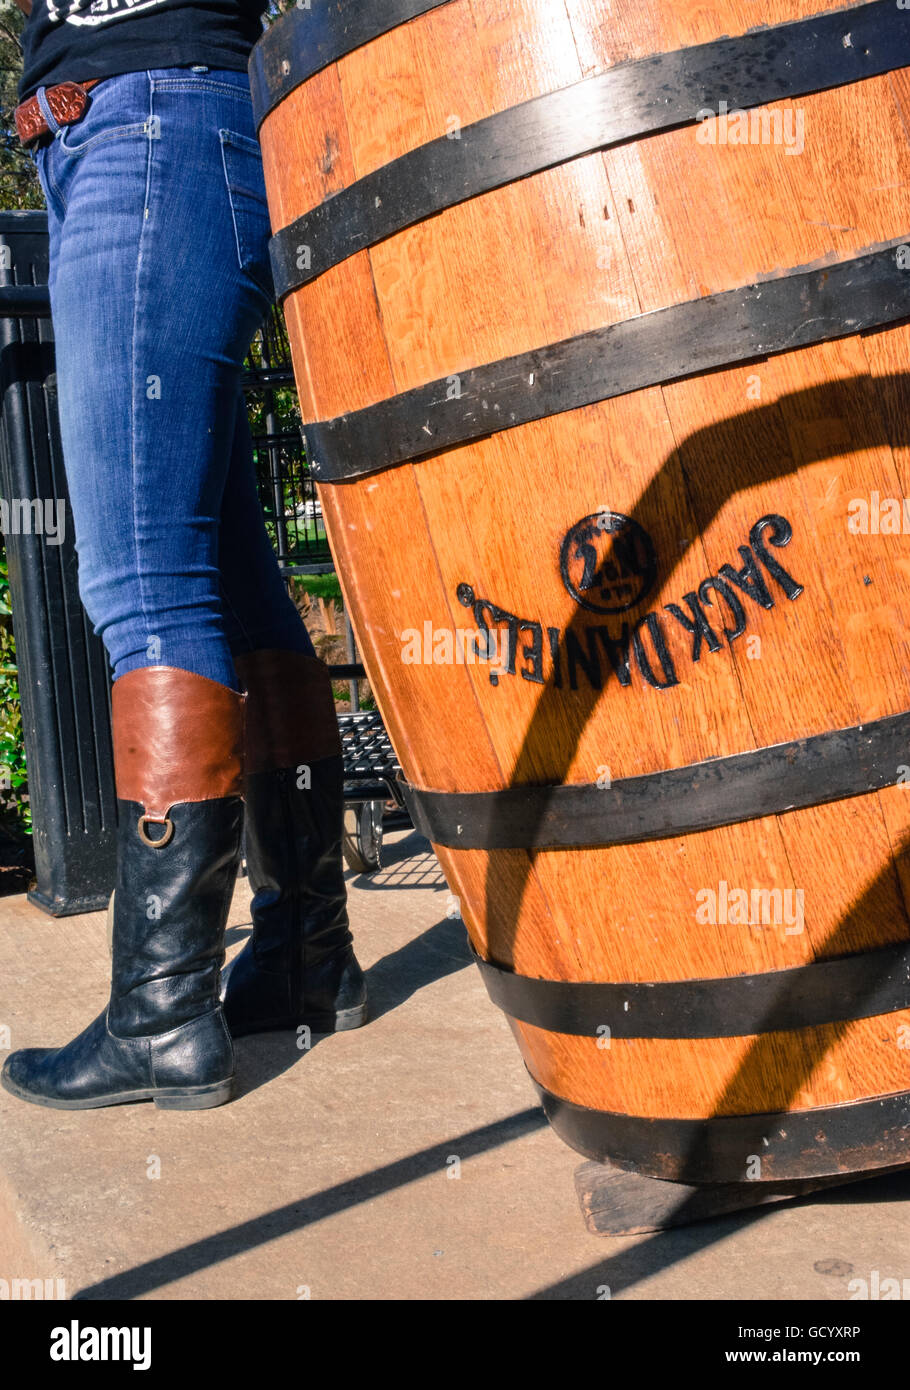 A Woman S Legs In Tight Jeans Tucked Into Riding Boots